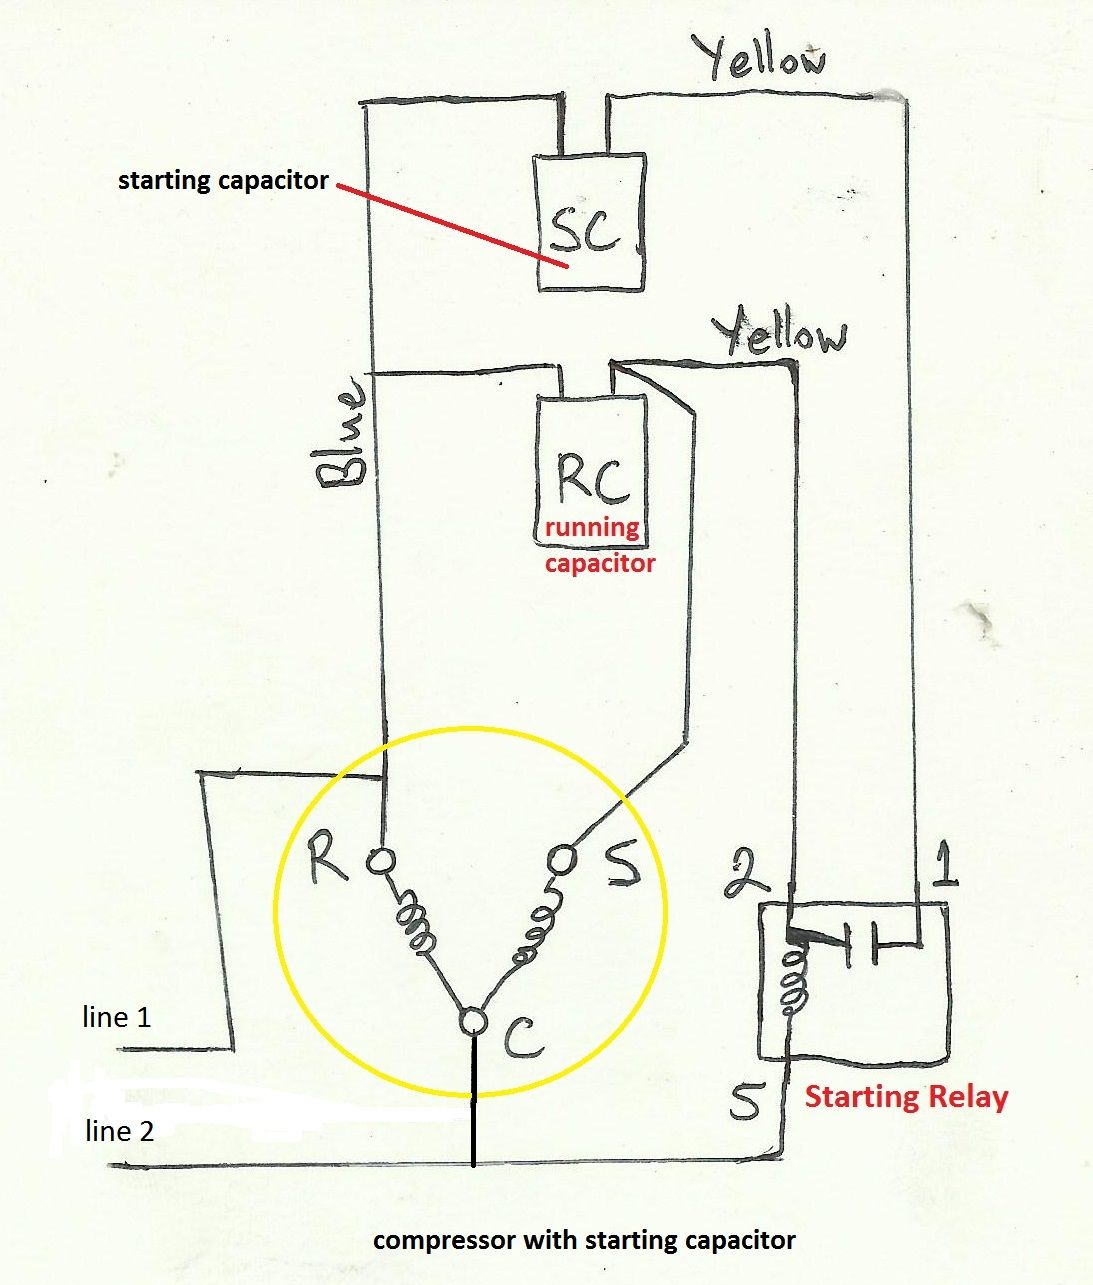 air compressor capacitor wiring diagram before you call a ac repair rh pinterest com HVAC Compressor Wiring Diagram Compressor Run Capacitor Wiring Diagram